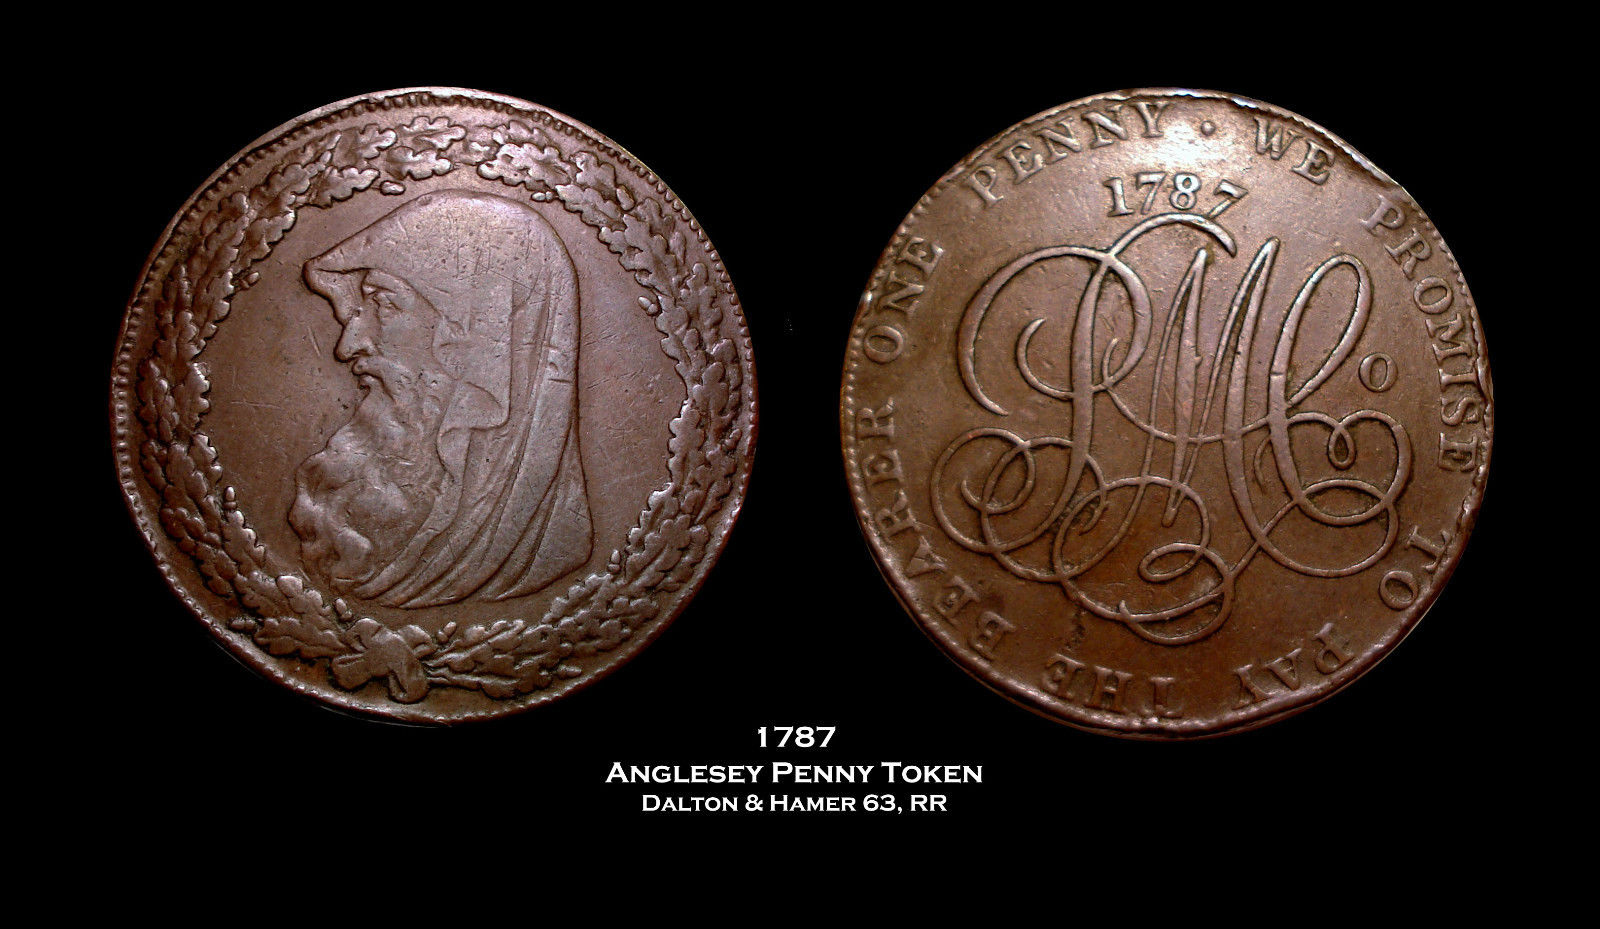 Anglesey Penny